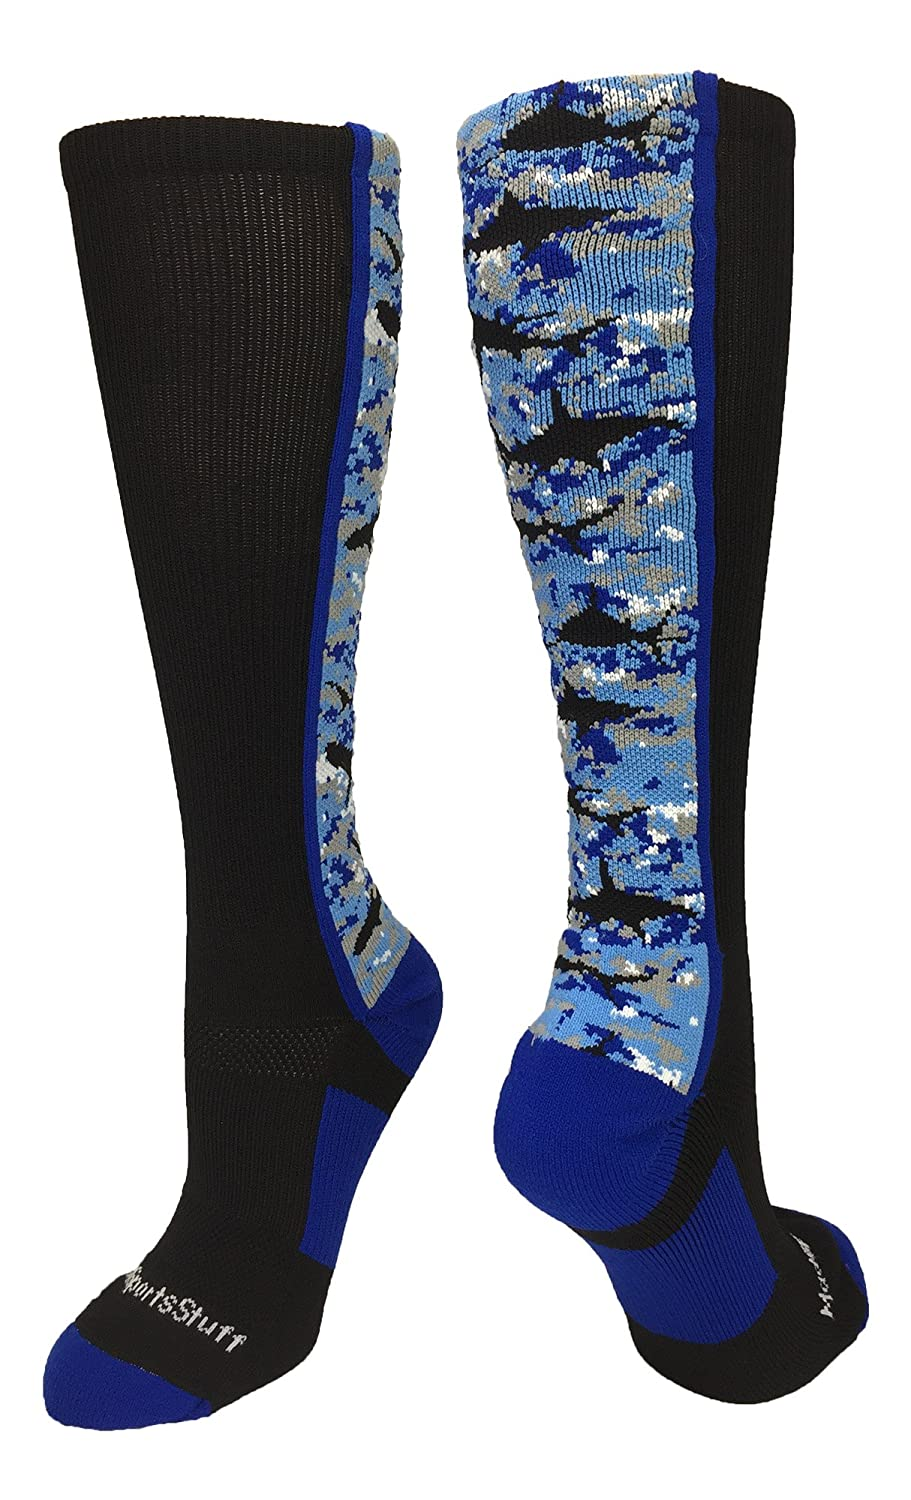 Digital Camo Shark Socks Over the Calf